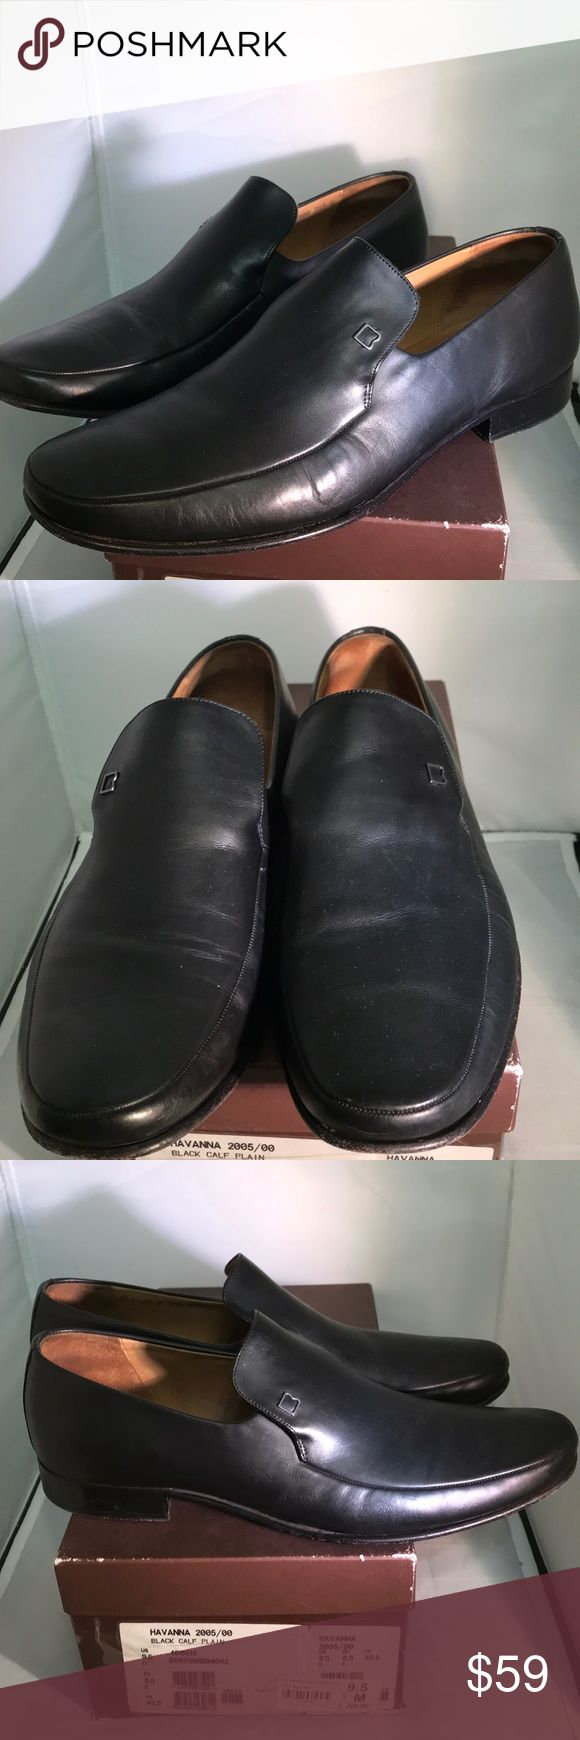 Pre-owned Bally's Men's Shoes size 9.5 These shoes are very nice and comfortable.  Black goes well with mostly all your attire. Bally Shoes Loafers & Slip-Ons